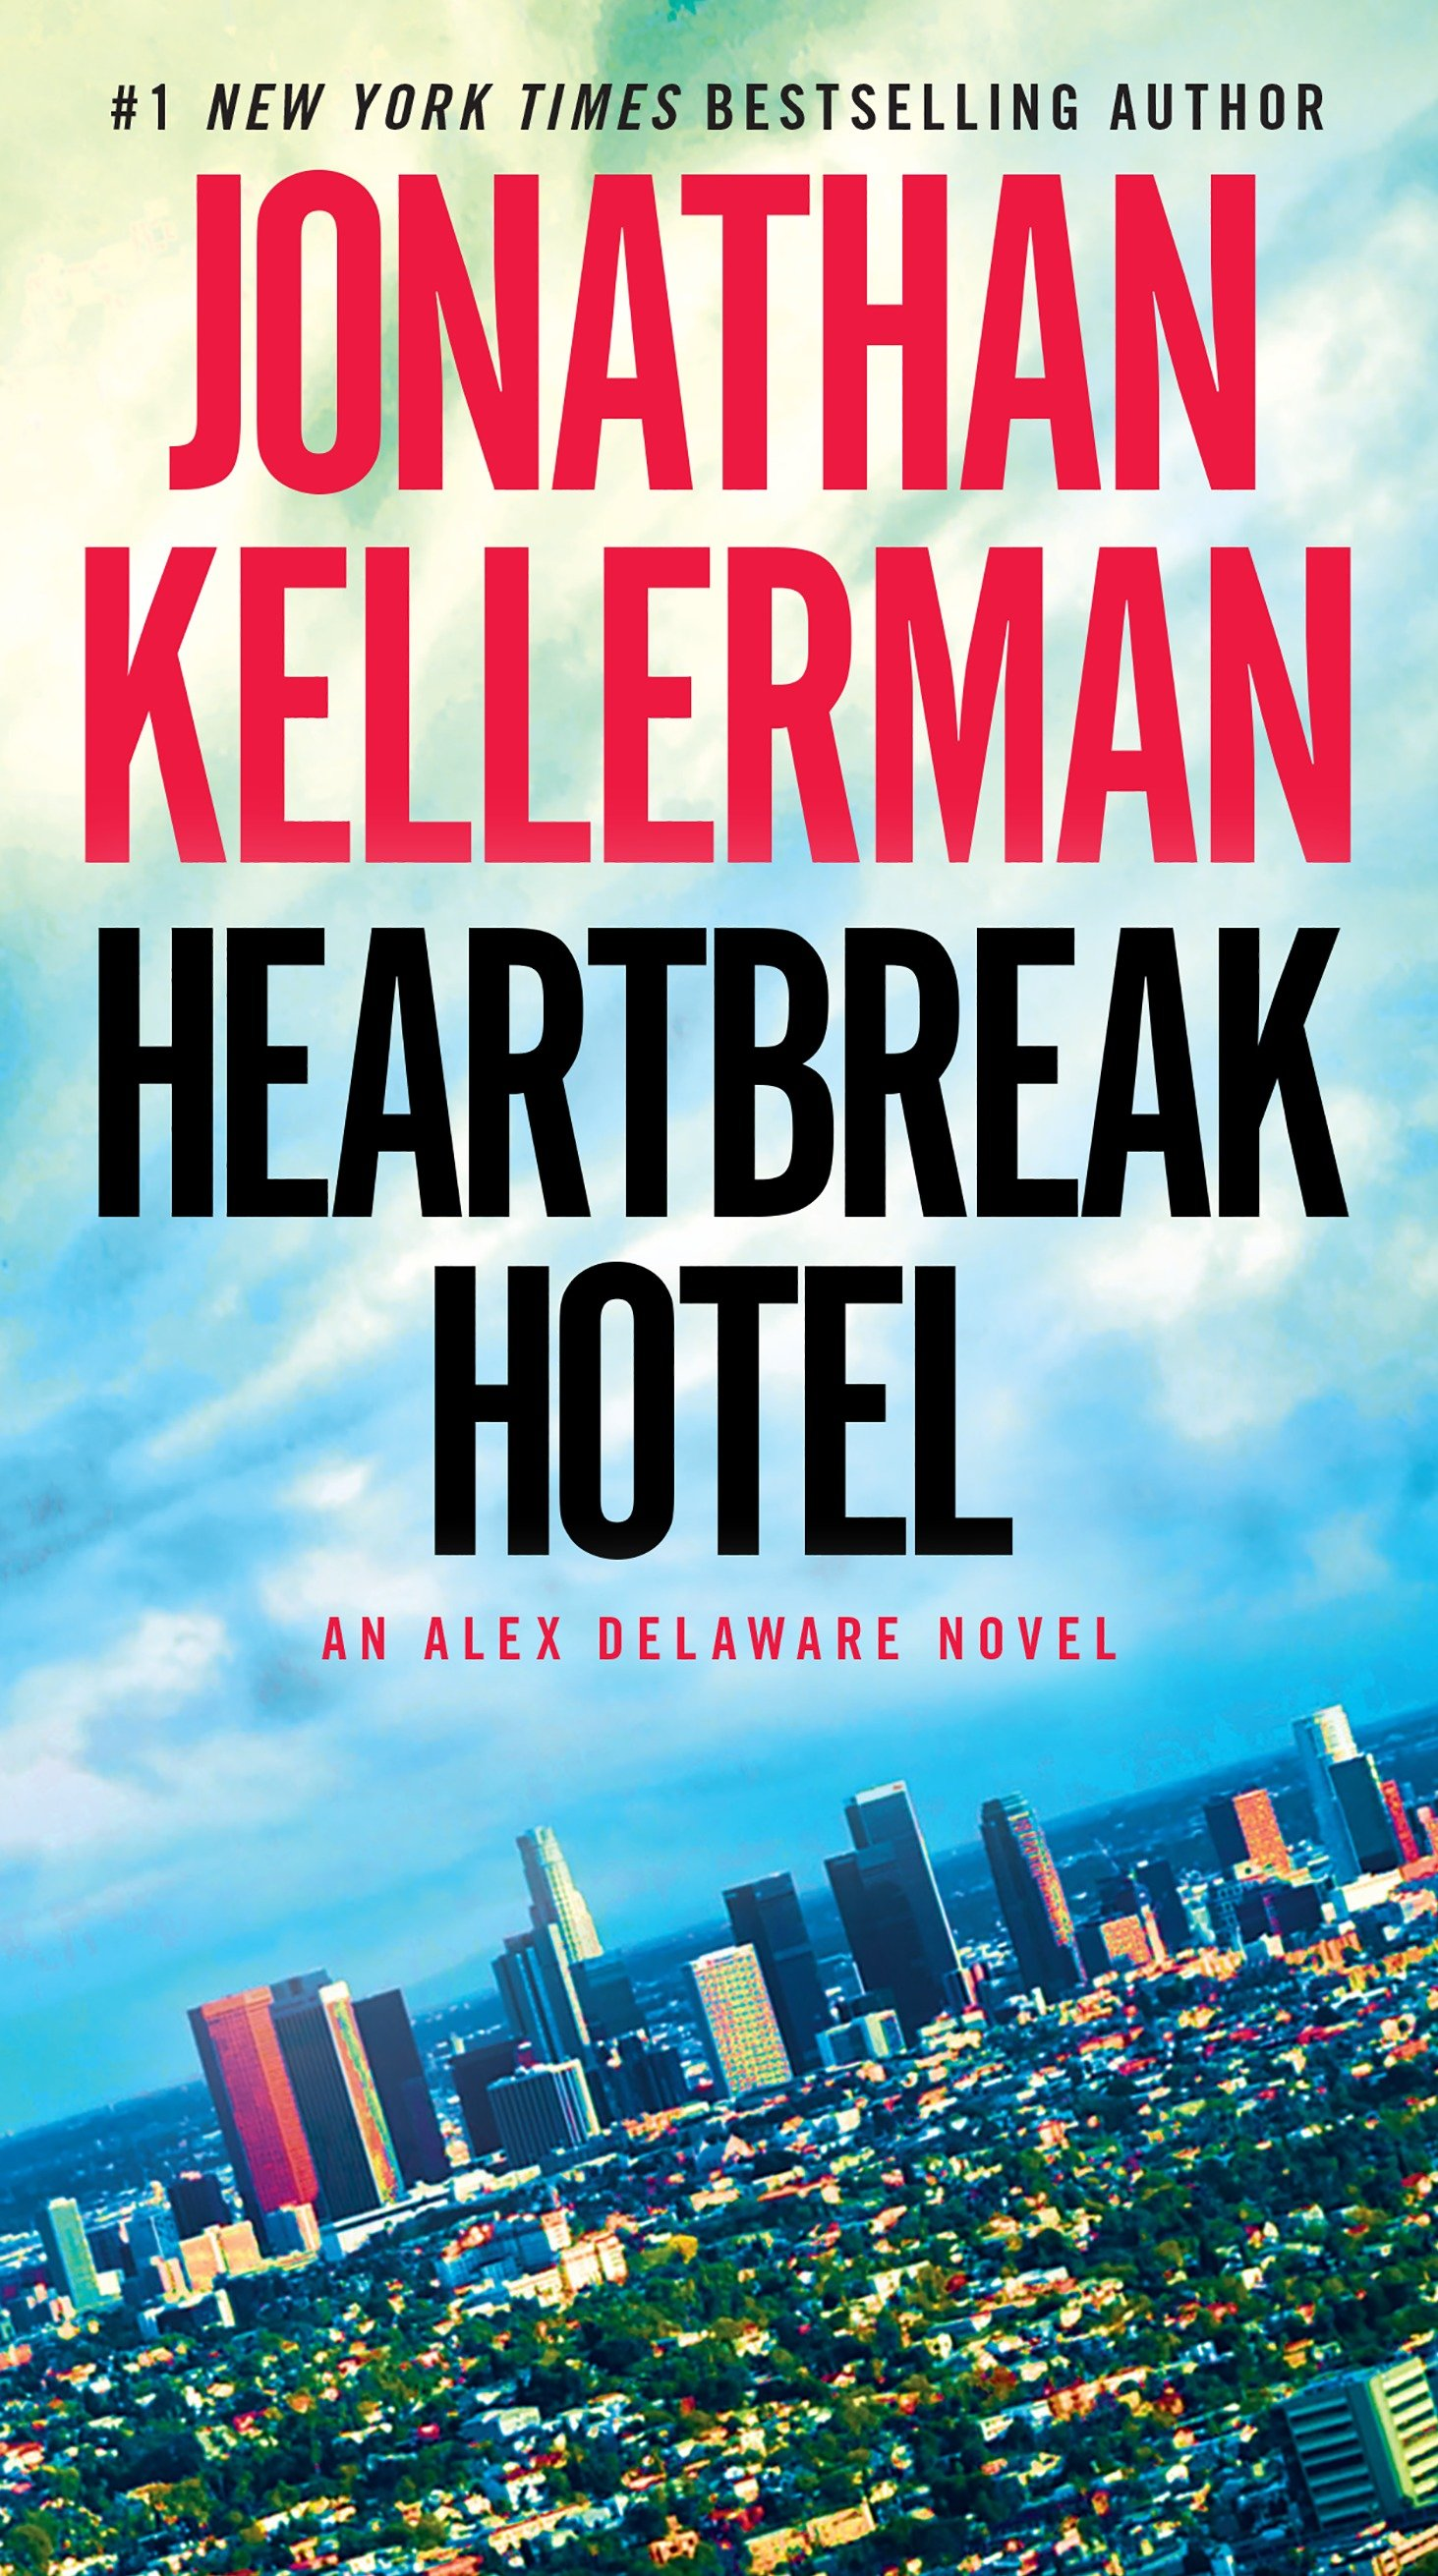 Heartbreak Hotel : an Alex Delaware novel